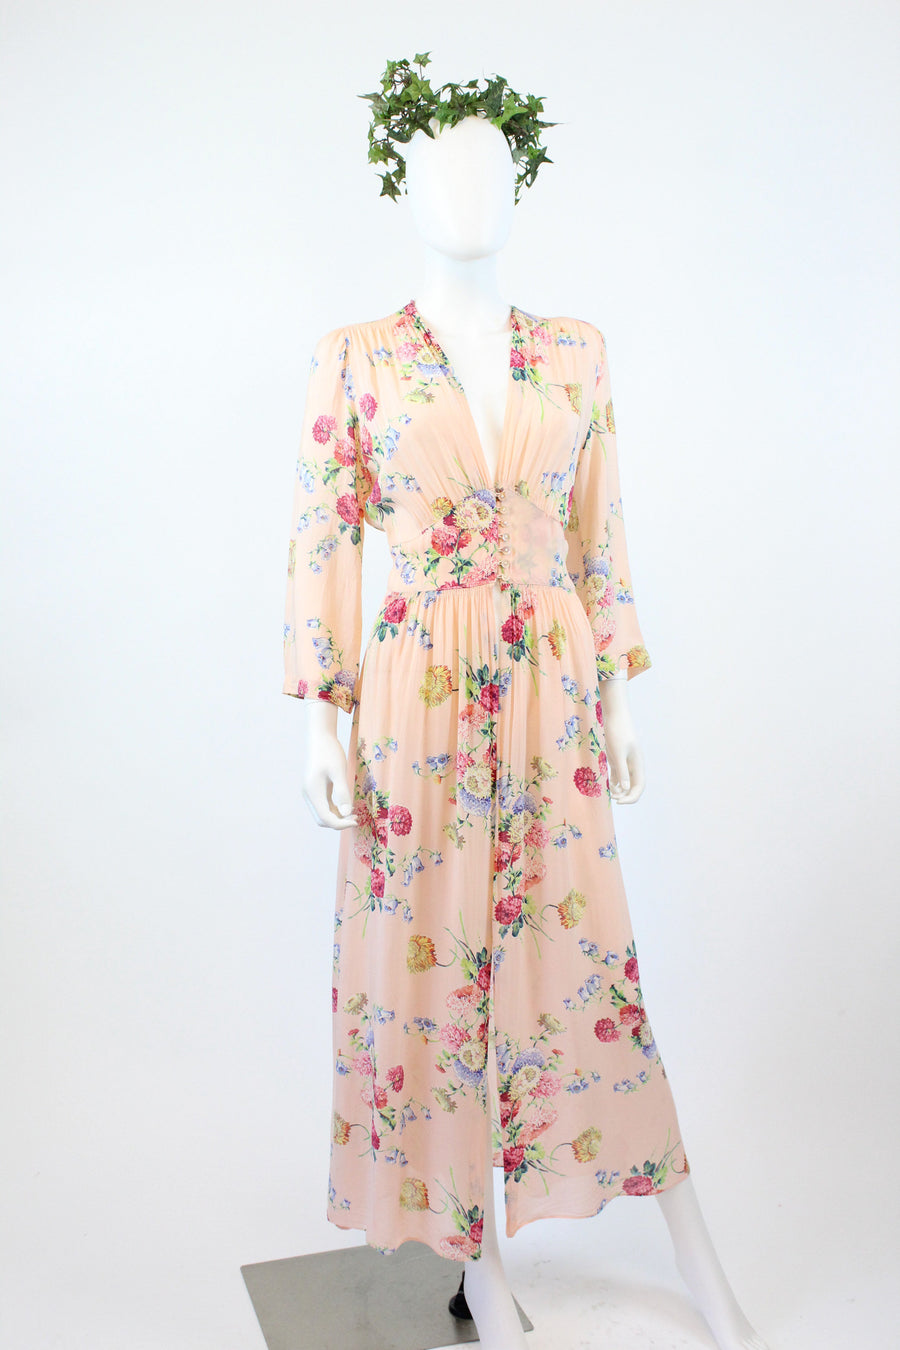 1940s Radcliffe rayon dress gown small | vintage floral robe | new in